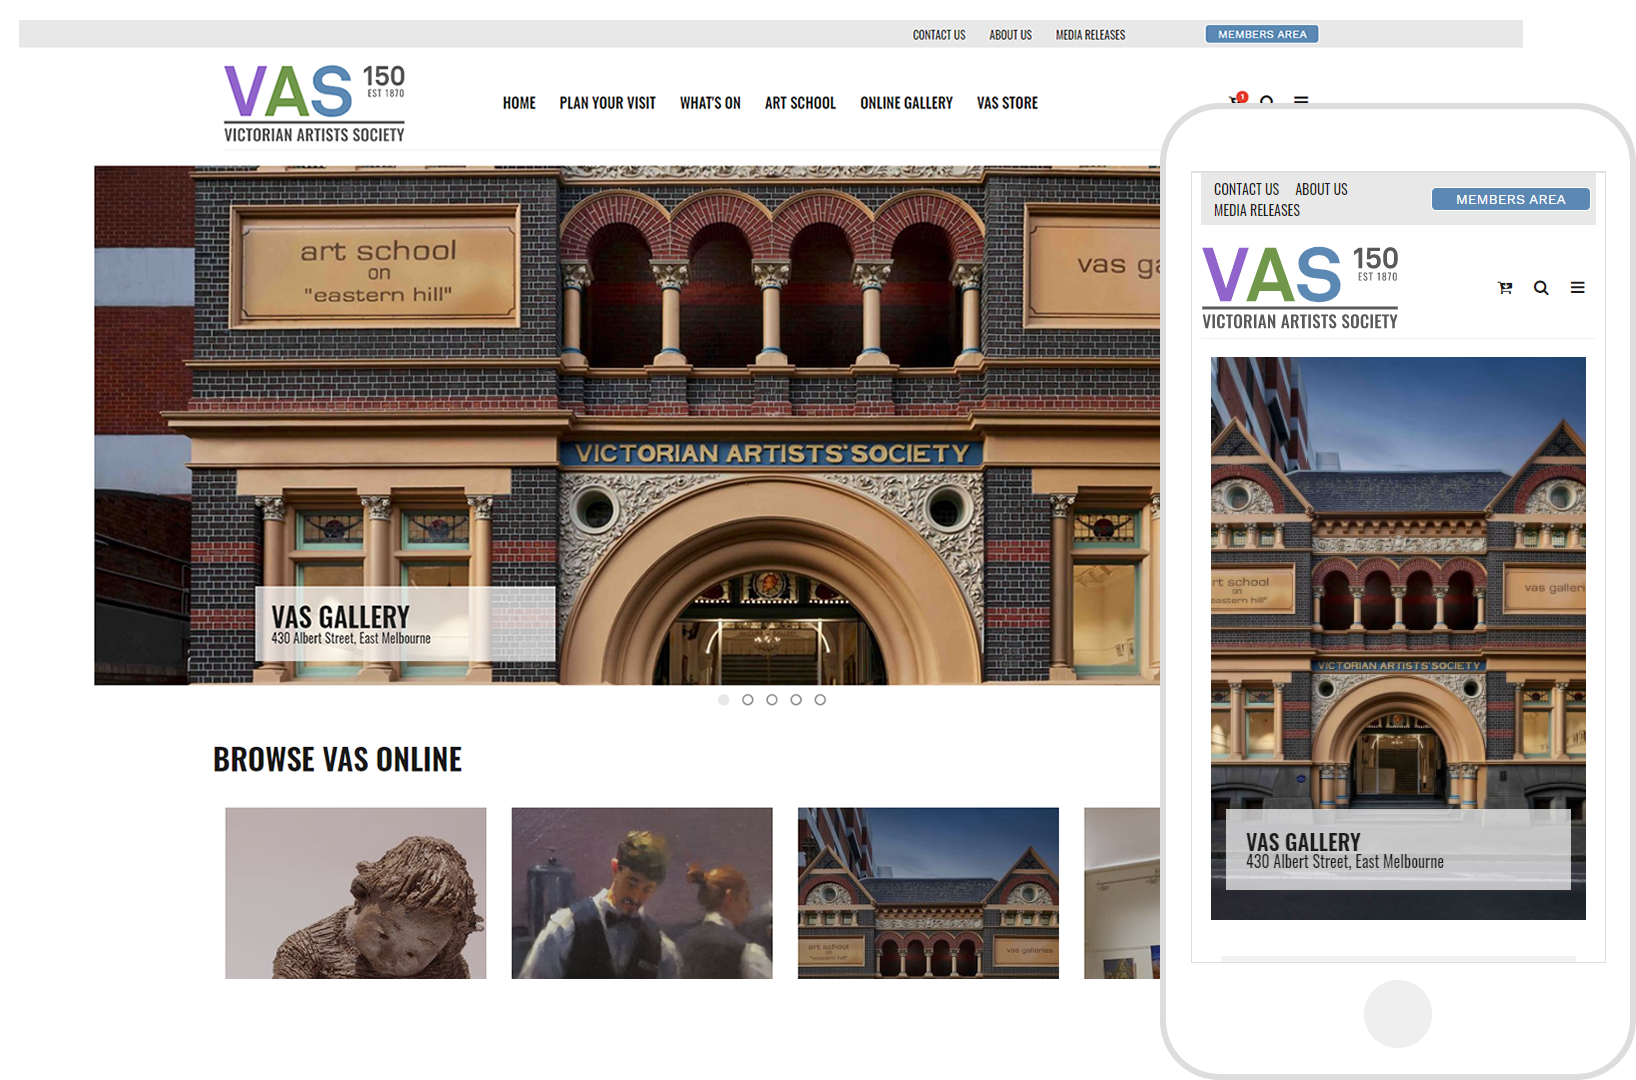 VAS Gallery - The Victorian Artists Society